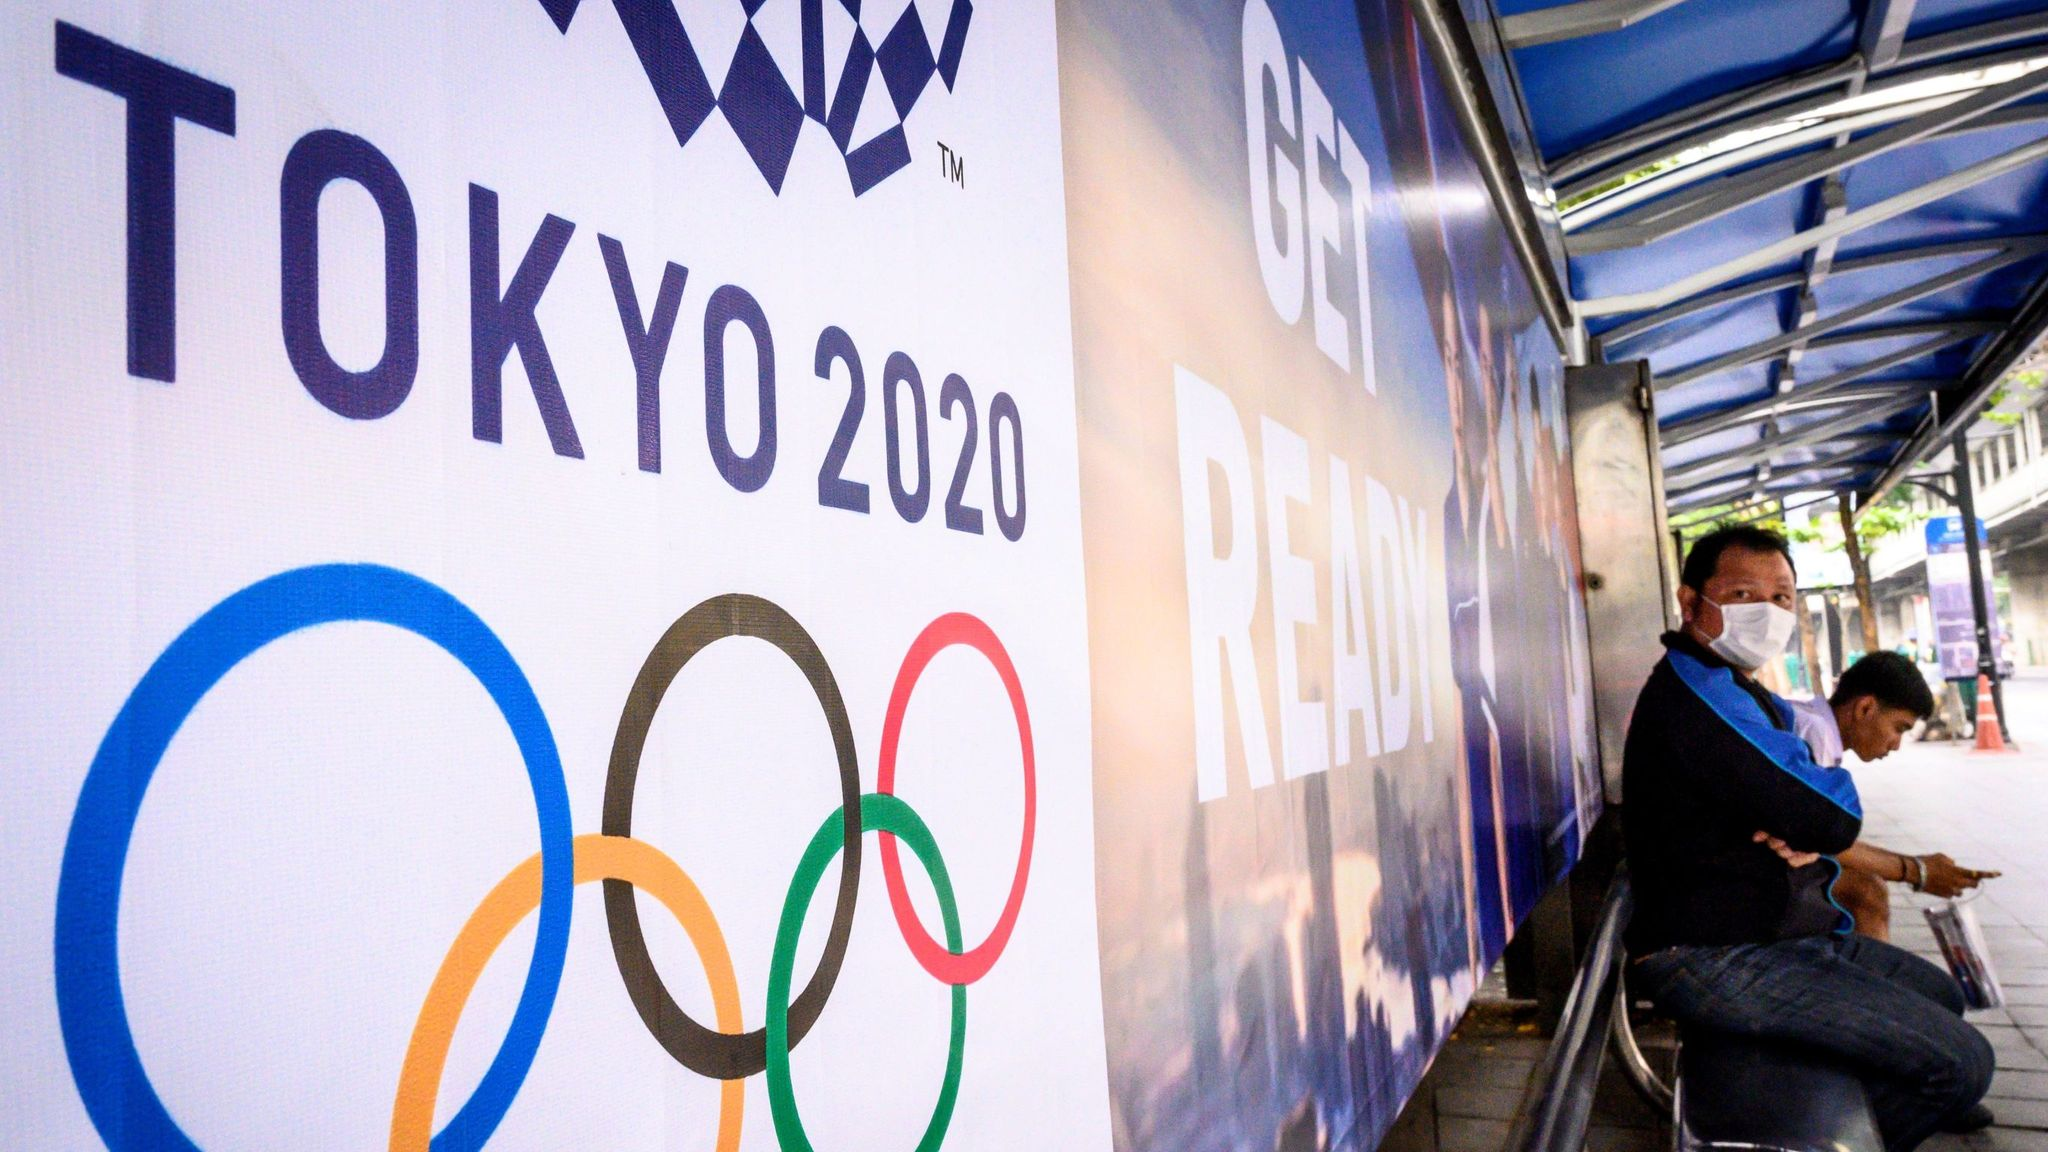 No Plans To Cancel Tokyo Olympics - Japanese Officials